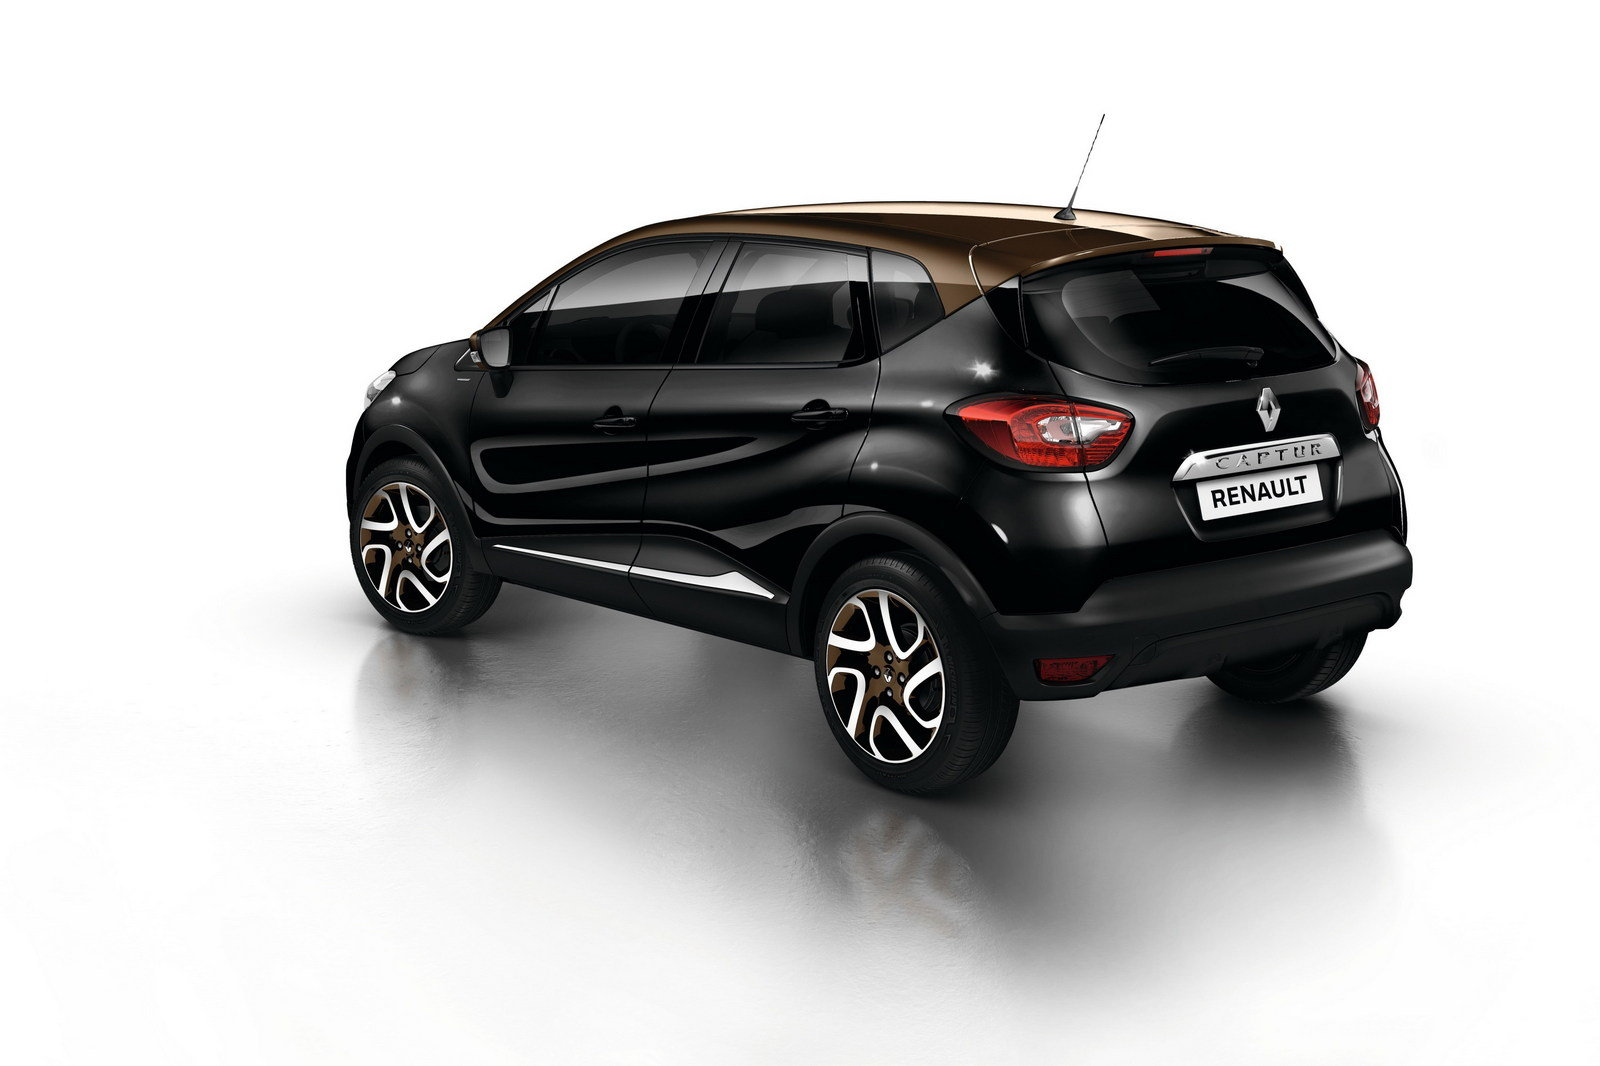 2016 renault captur hypnotic limited edition picture for Renault captur grigia